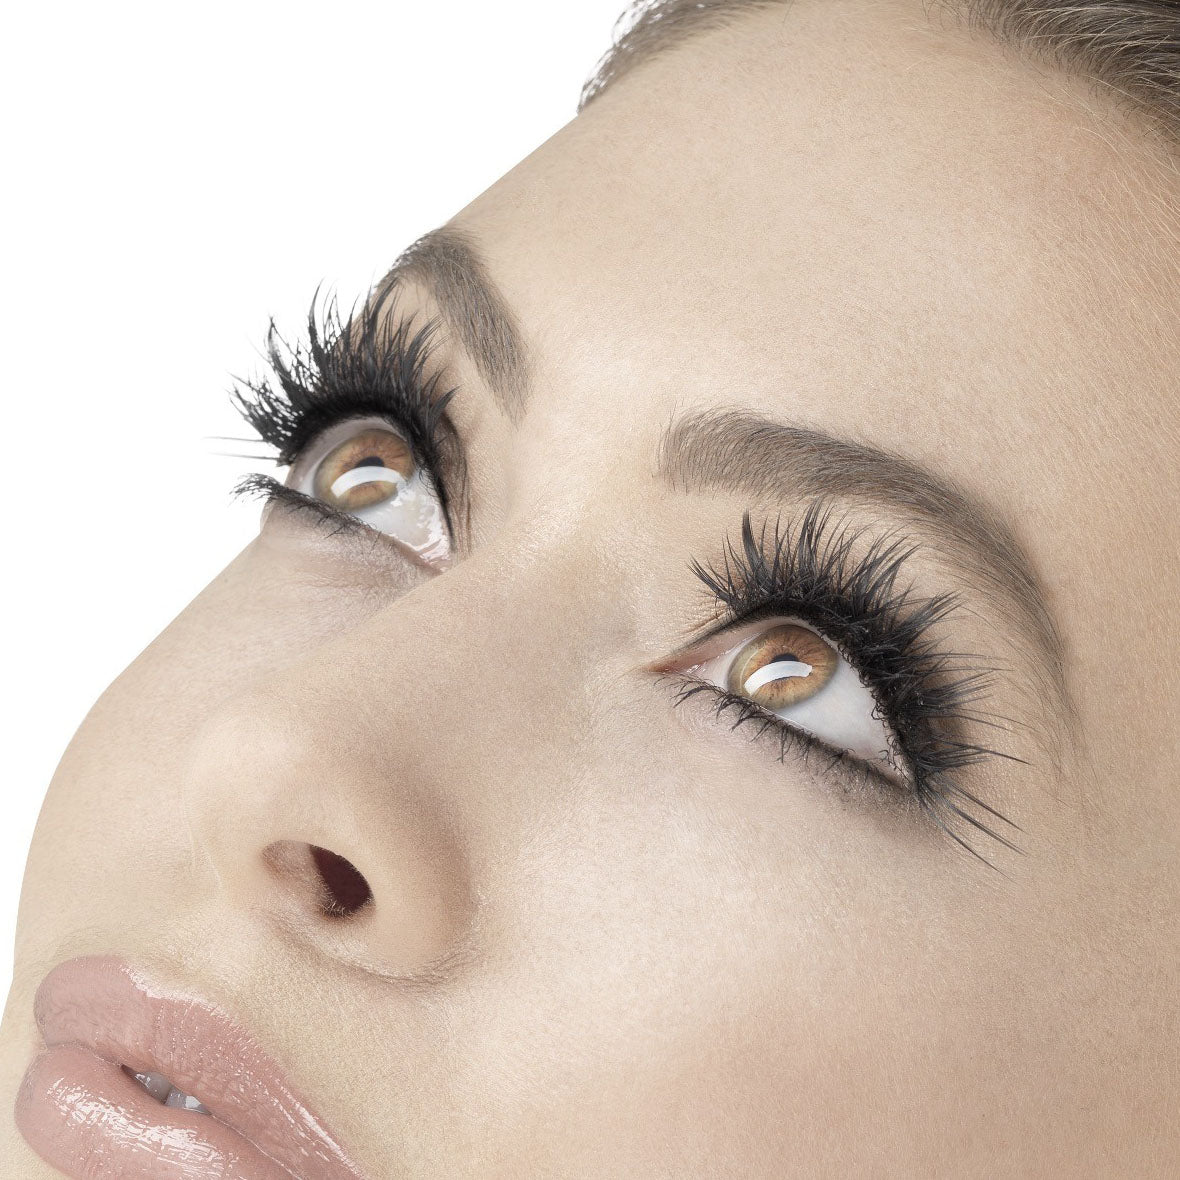 Fever False Eyelashes - Black Flutter - Red Carpet FX - Professional Makeup